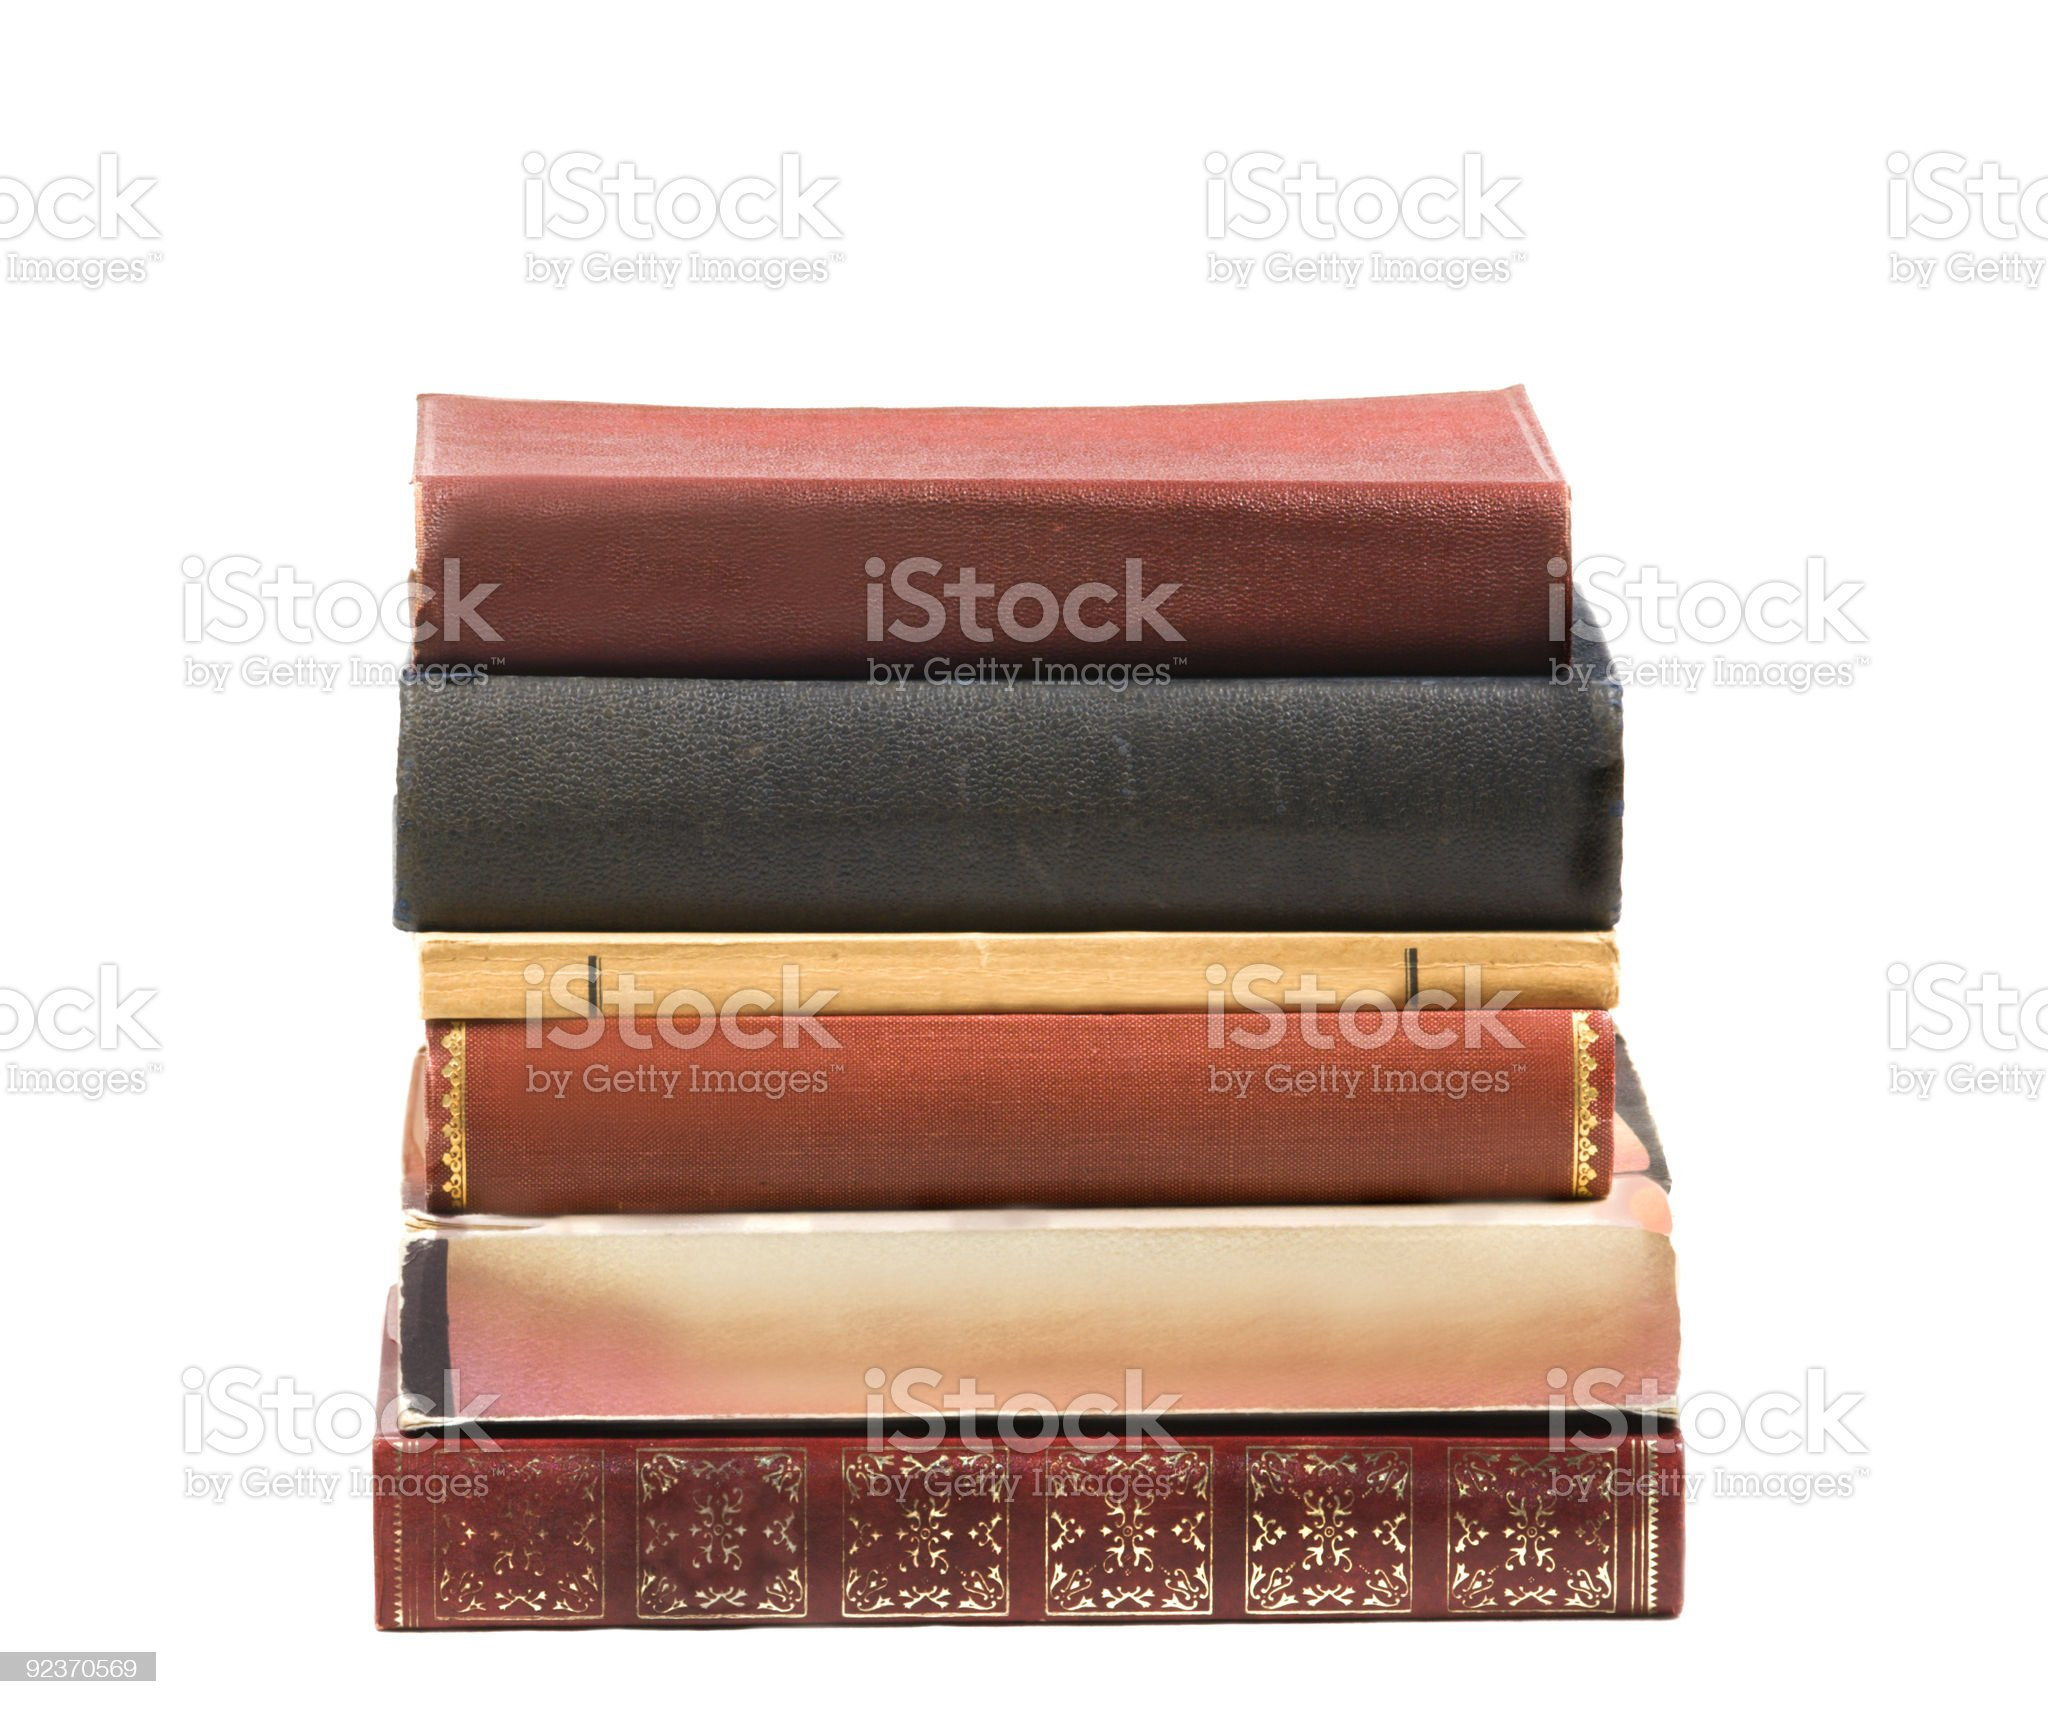 Pile of six old books royalty-free stock photo